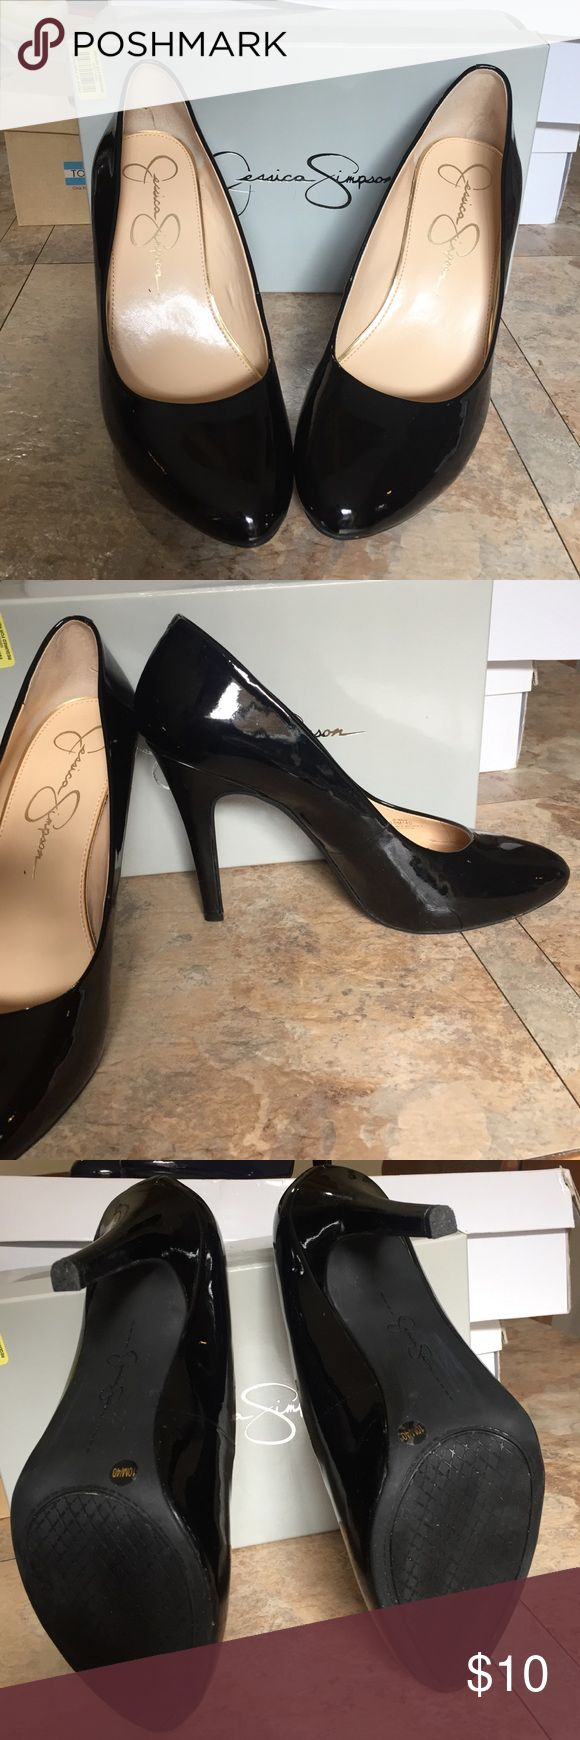 Jessica Simpson black heels Lightly used in good condition heels from Jessica Simpson. Minor scratch on one of the heels. Size 10M Let me know if you have any questions. Jessica Simpson Shoes Heels